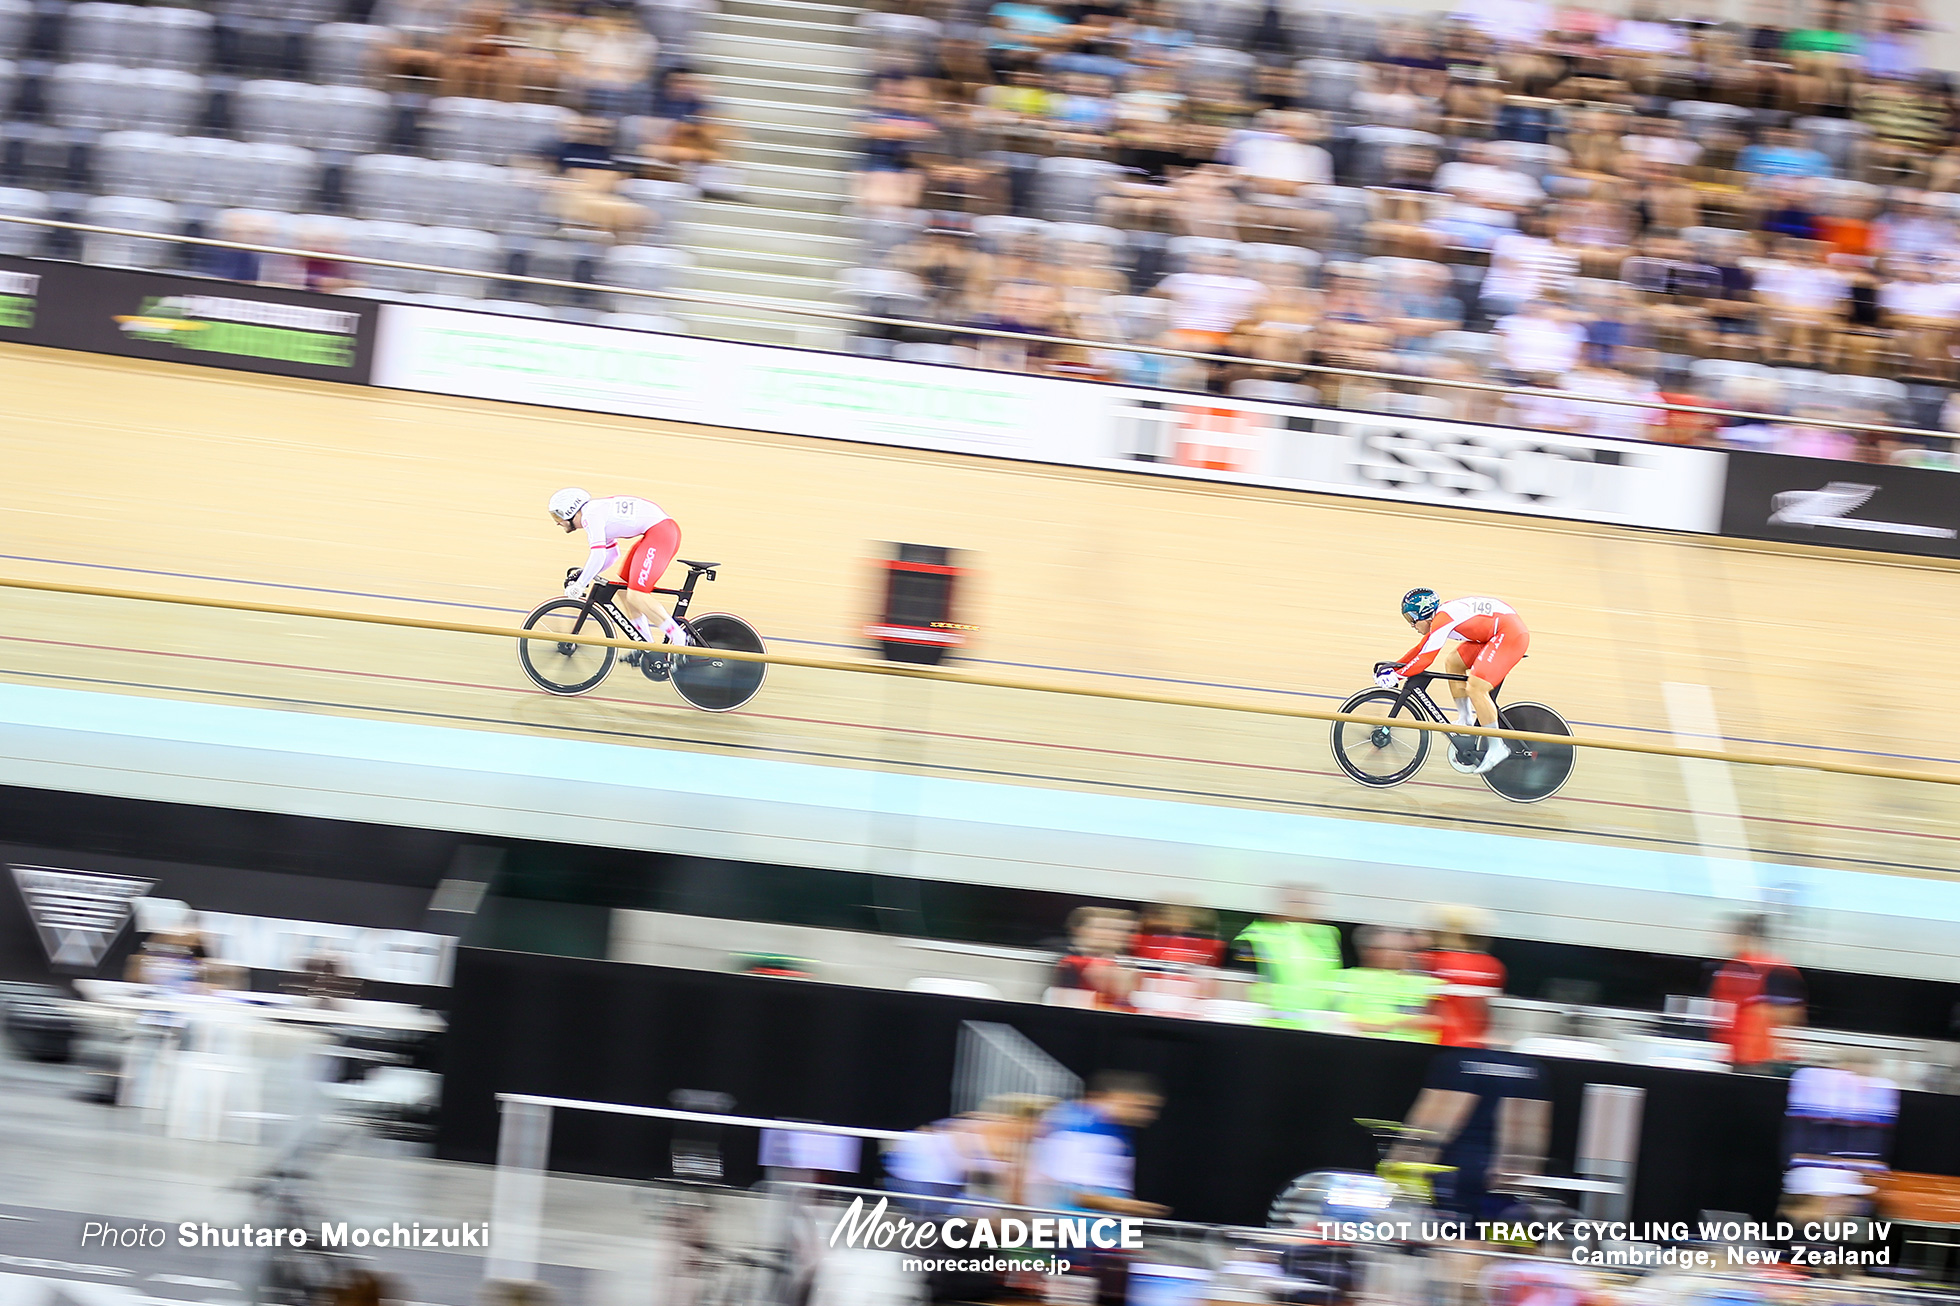 Semi Finals / Men's Sprint / TISSOT UCI TRACK CYCLING WORLD CUP IV, Cambridge, New Zealand